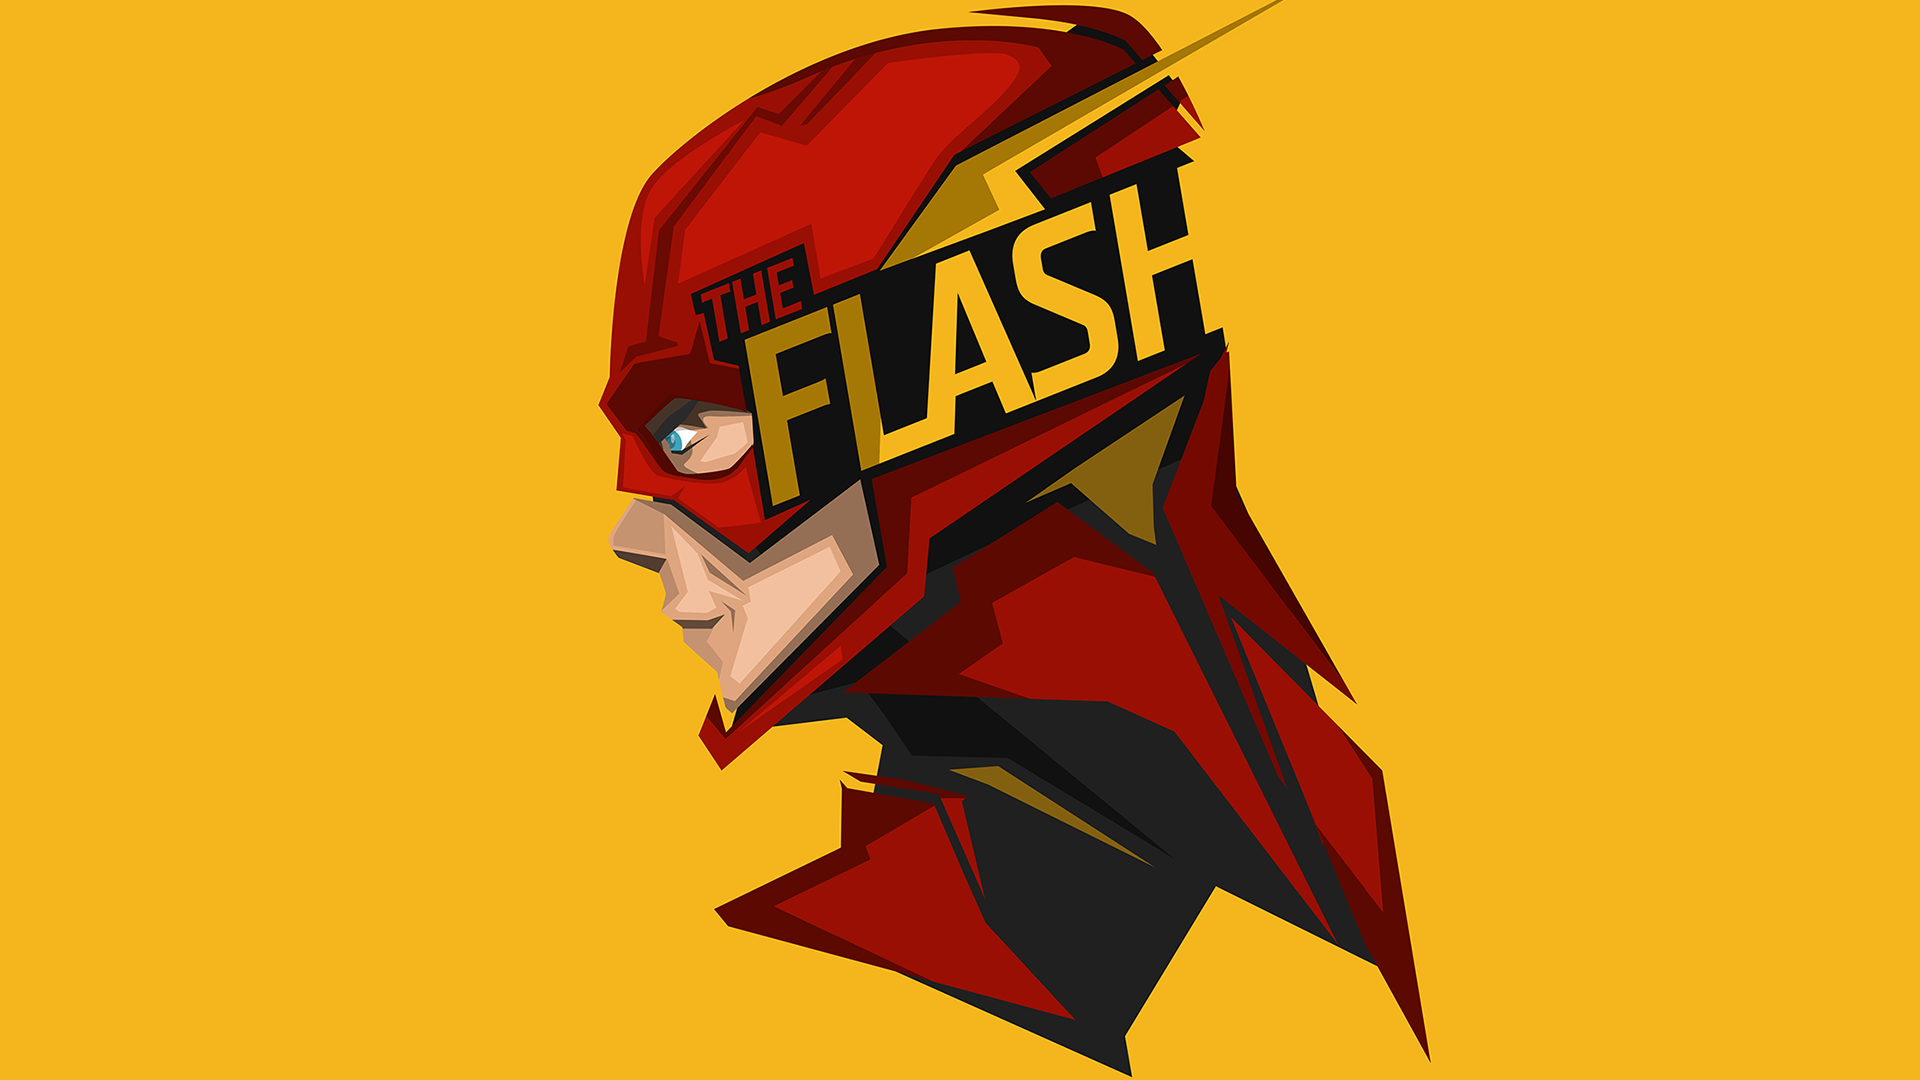 206 Flash HD Wallpapers | Background Images - Wallpaper Abyss